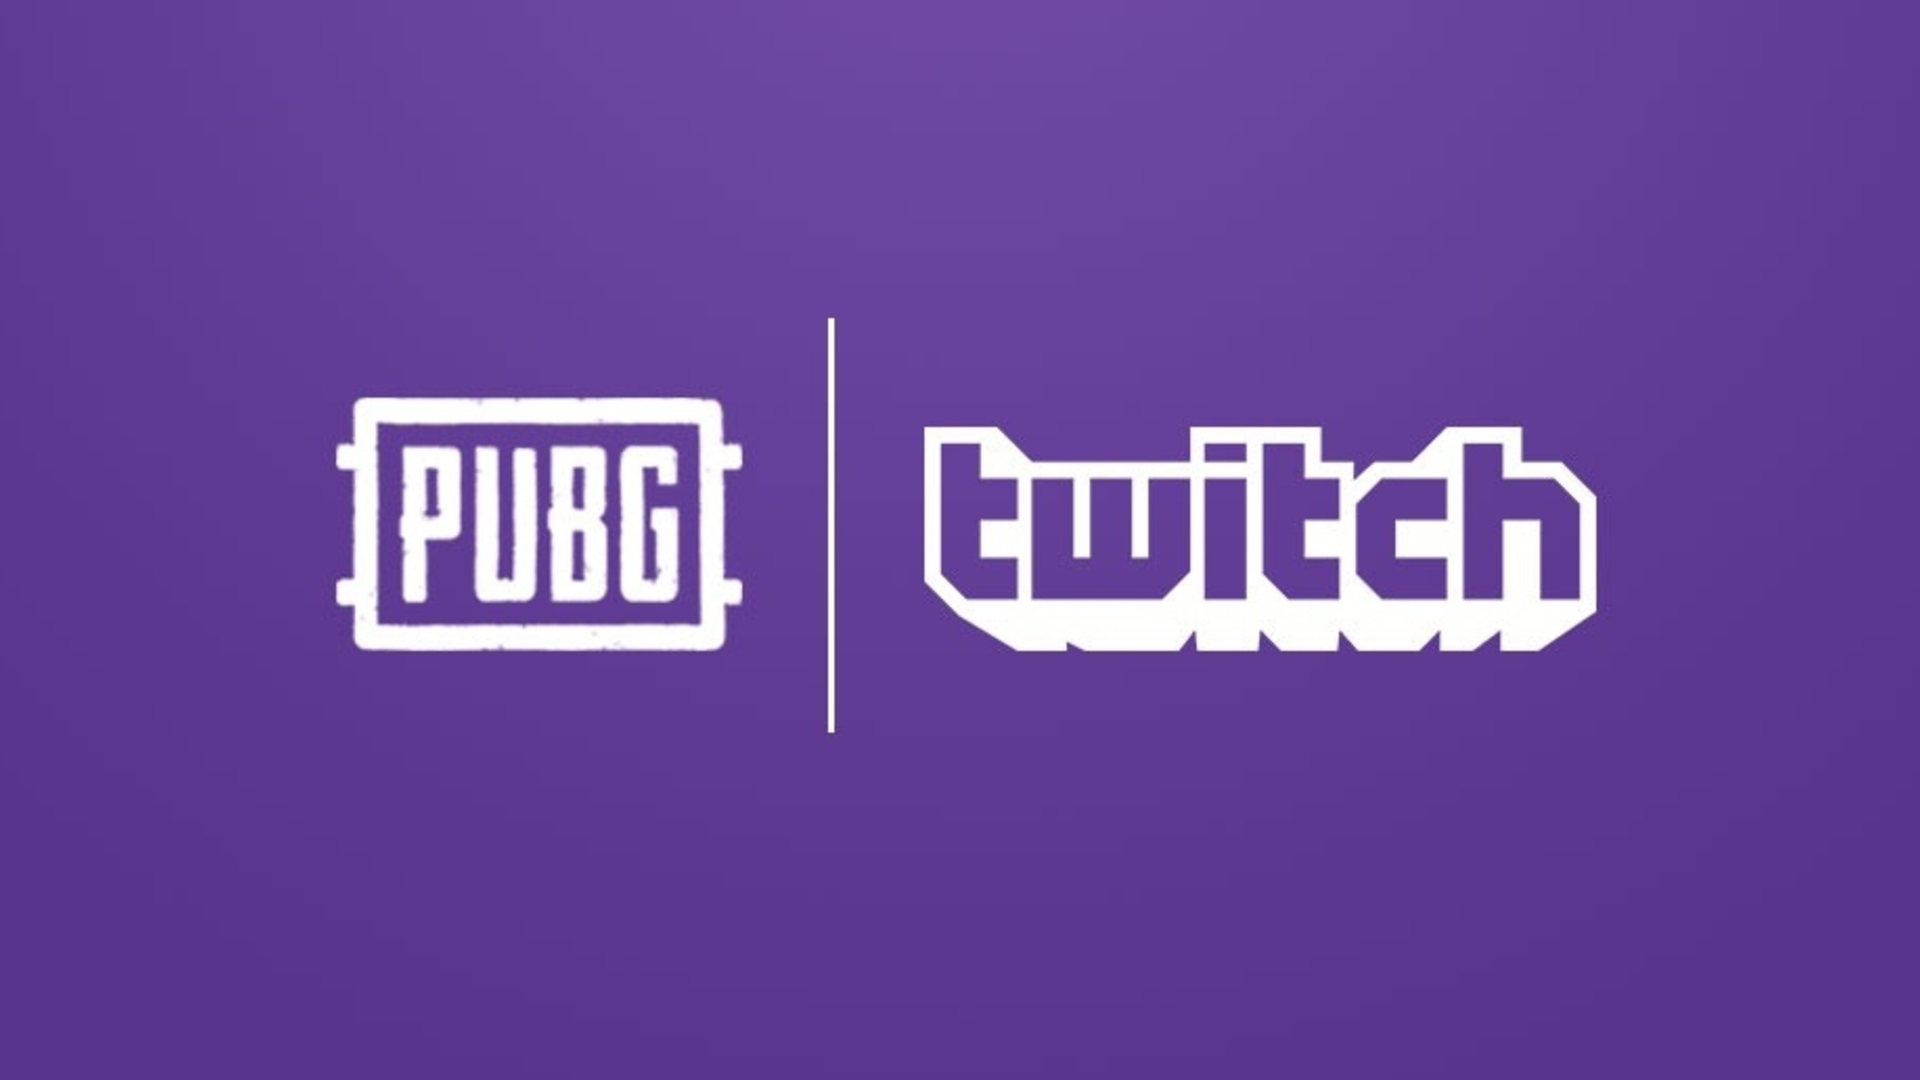 Pubg Wallpaper App: PUBG App Lets You Discover If You Killed A Streamer